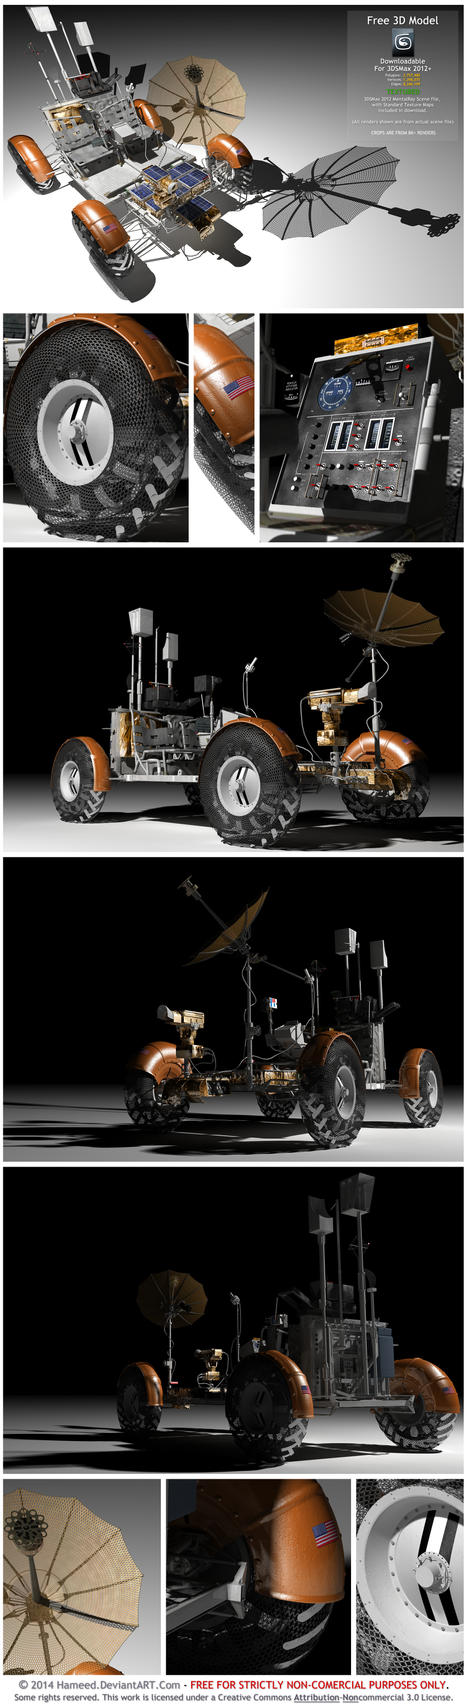 Lunar Rover - Downloadable 3D Model With Textures by Hameed